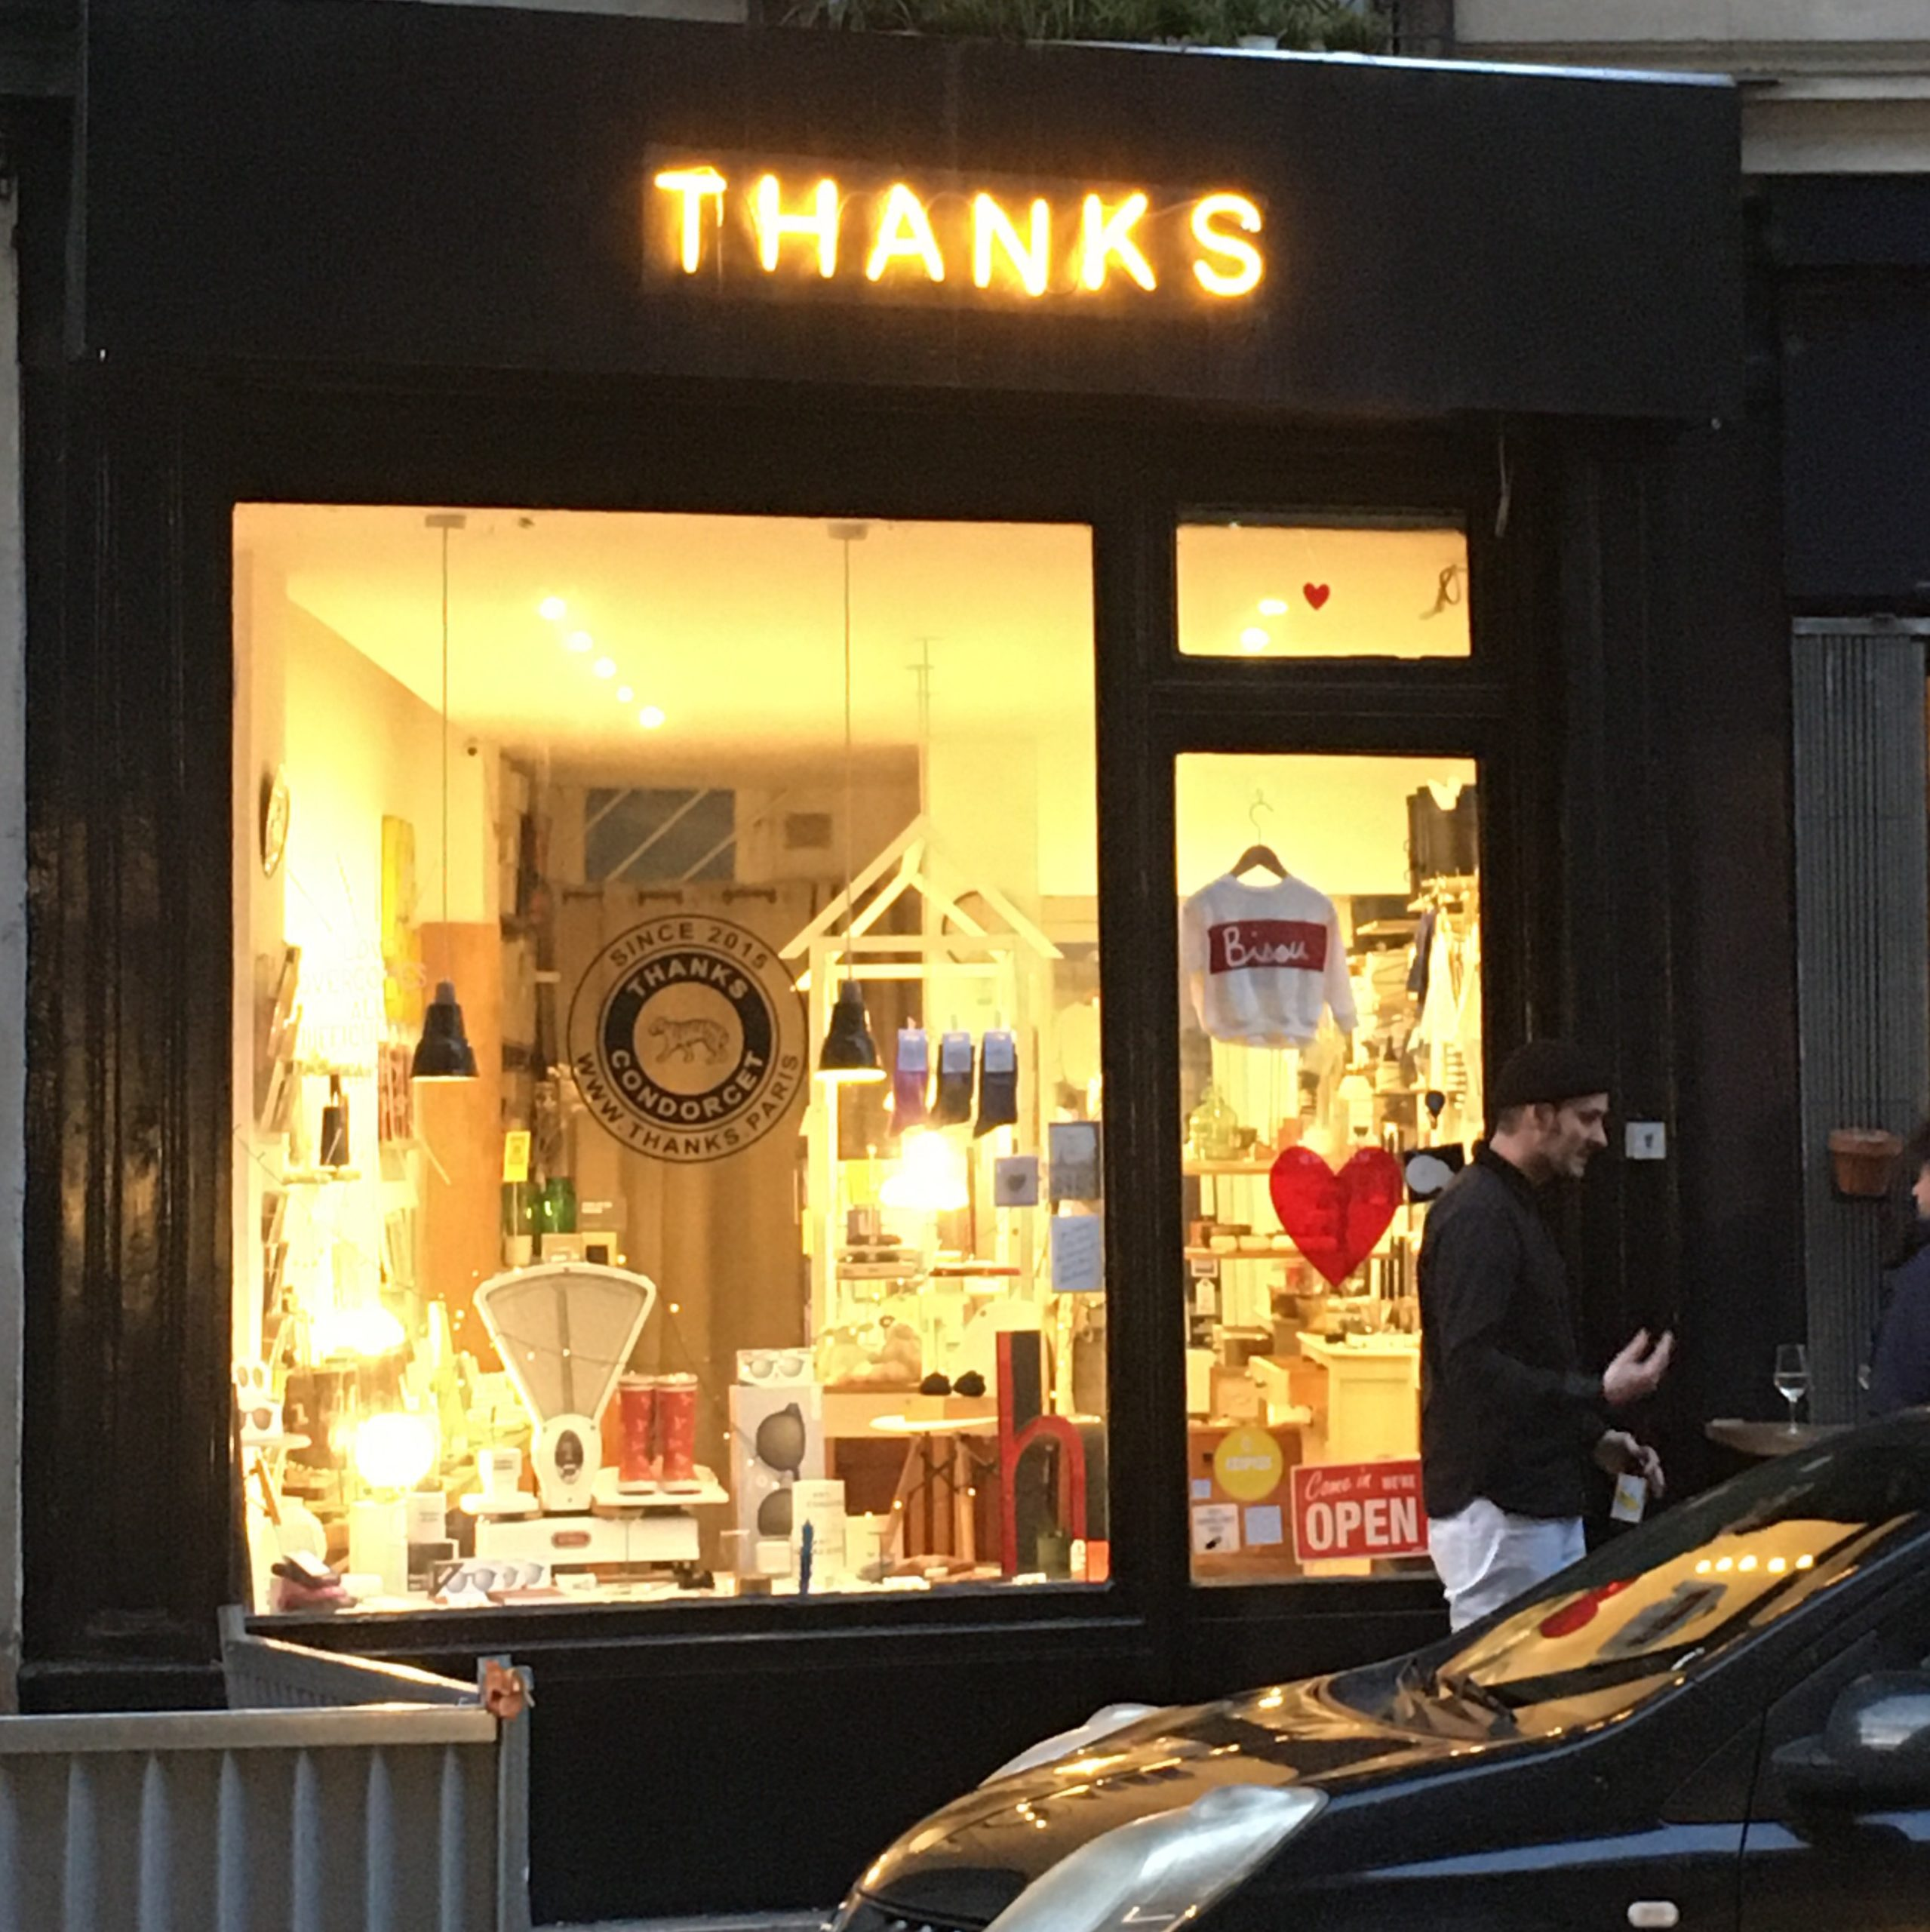 A shopfront with the word